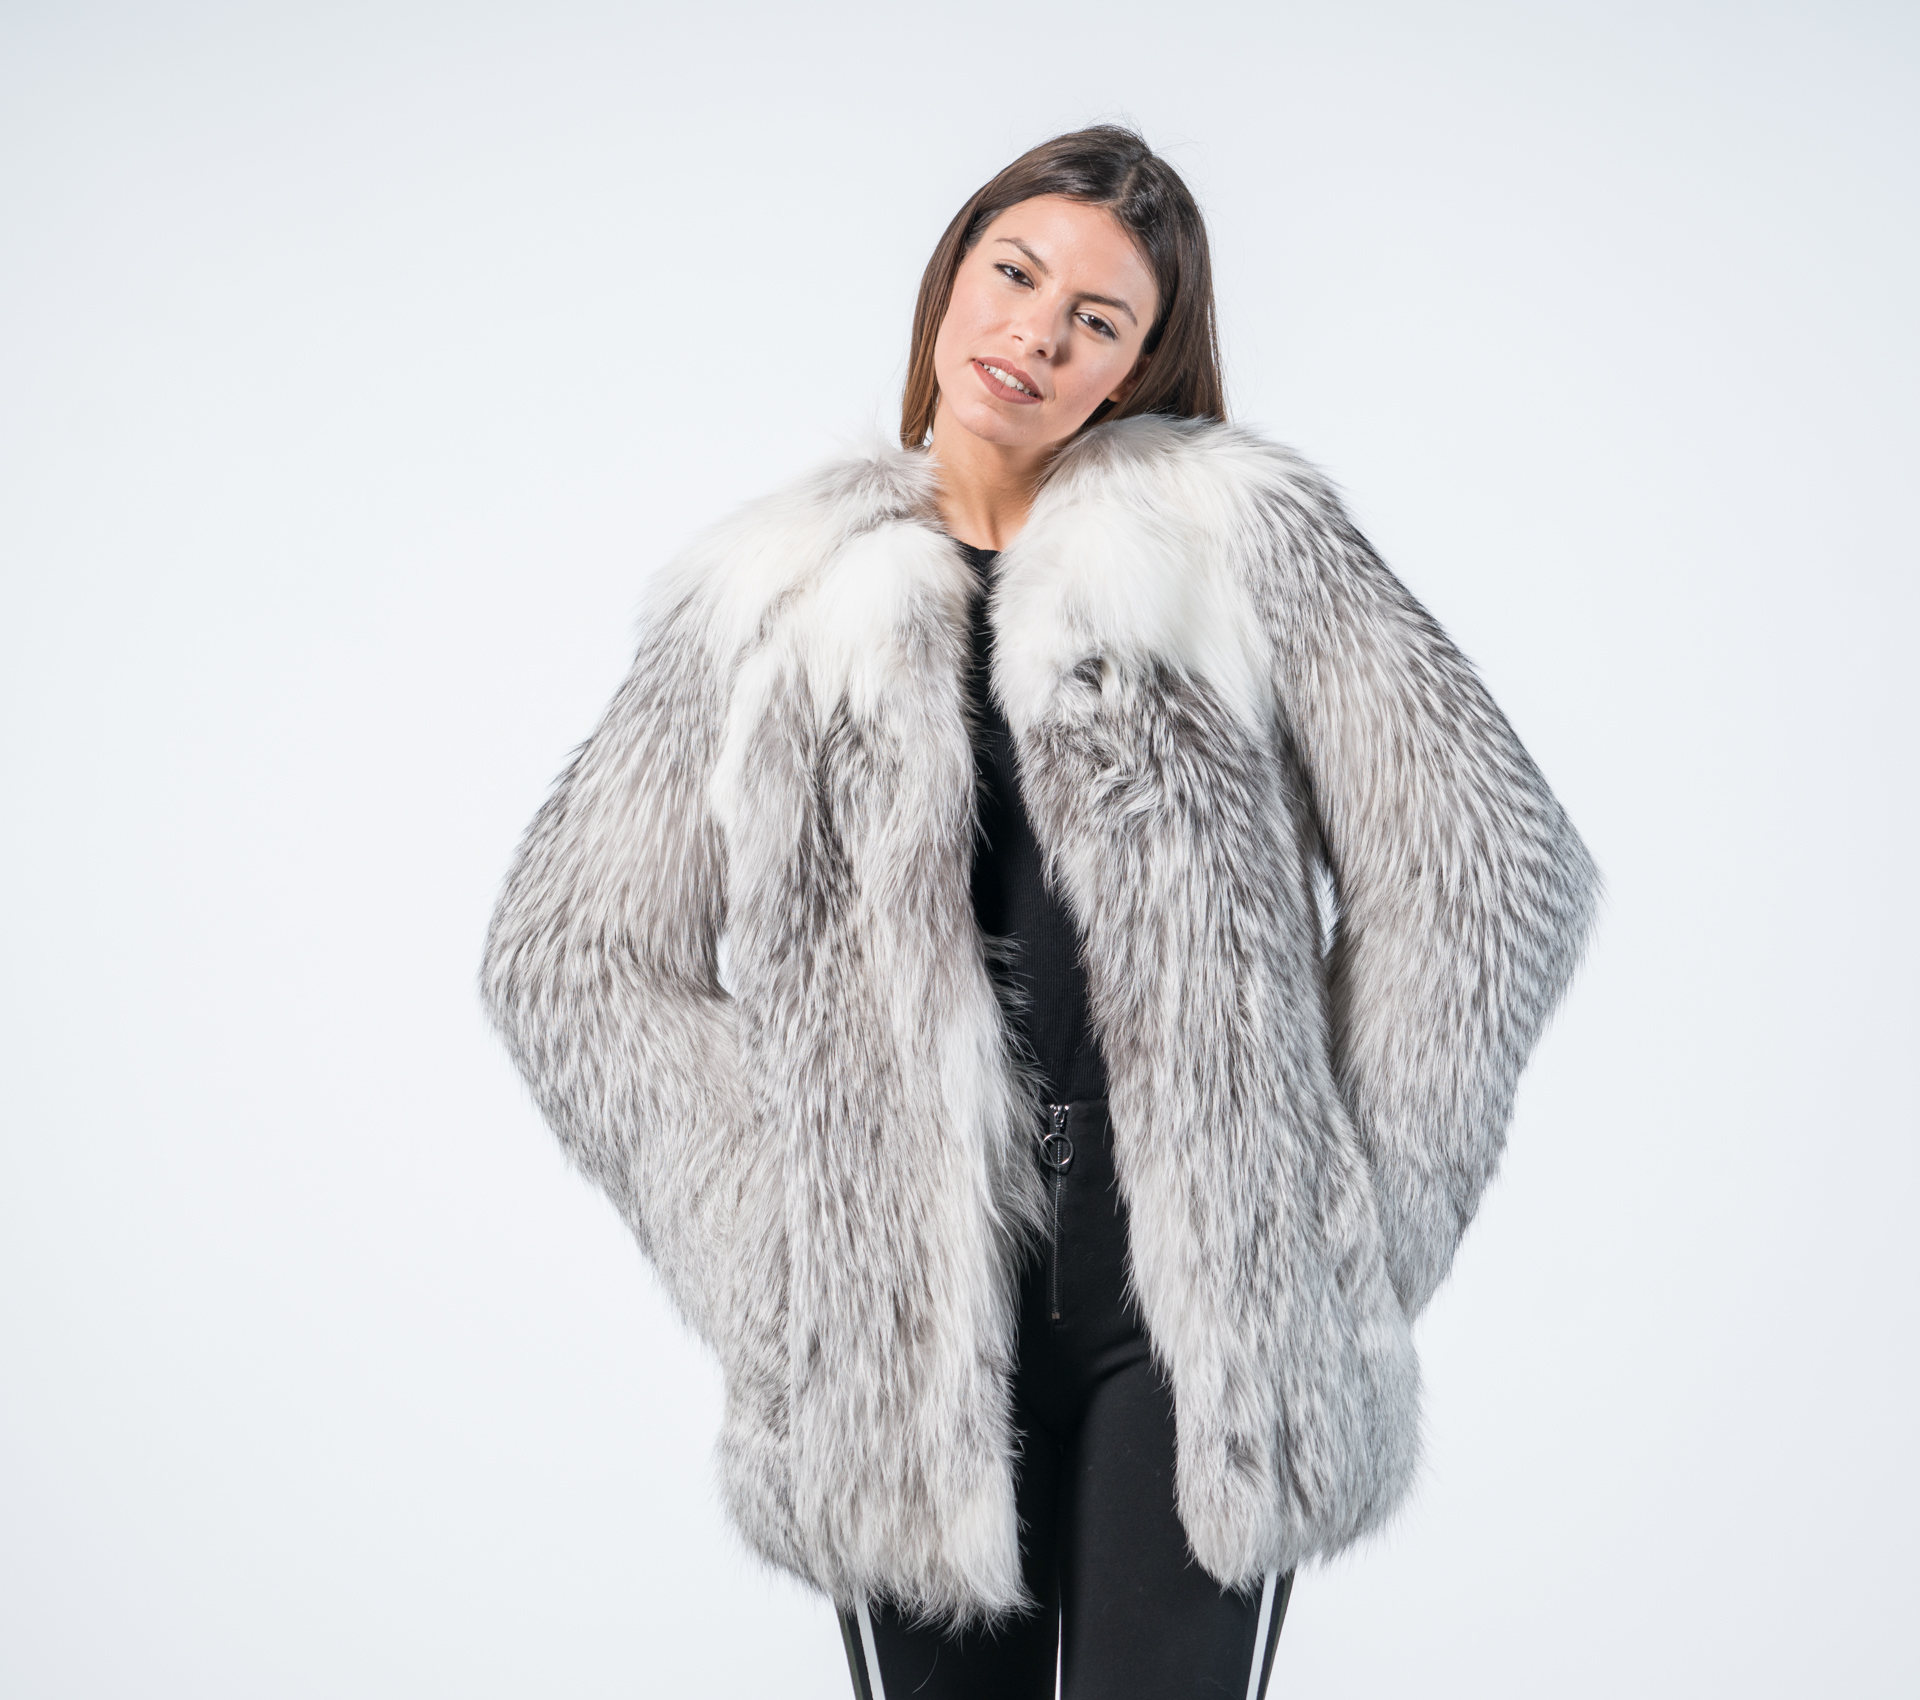 af0c5d5a9 Marble Fox Fur Coat Womens Marble Fox Fur Coat Womens ...